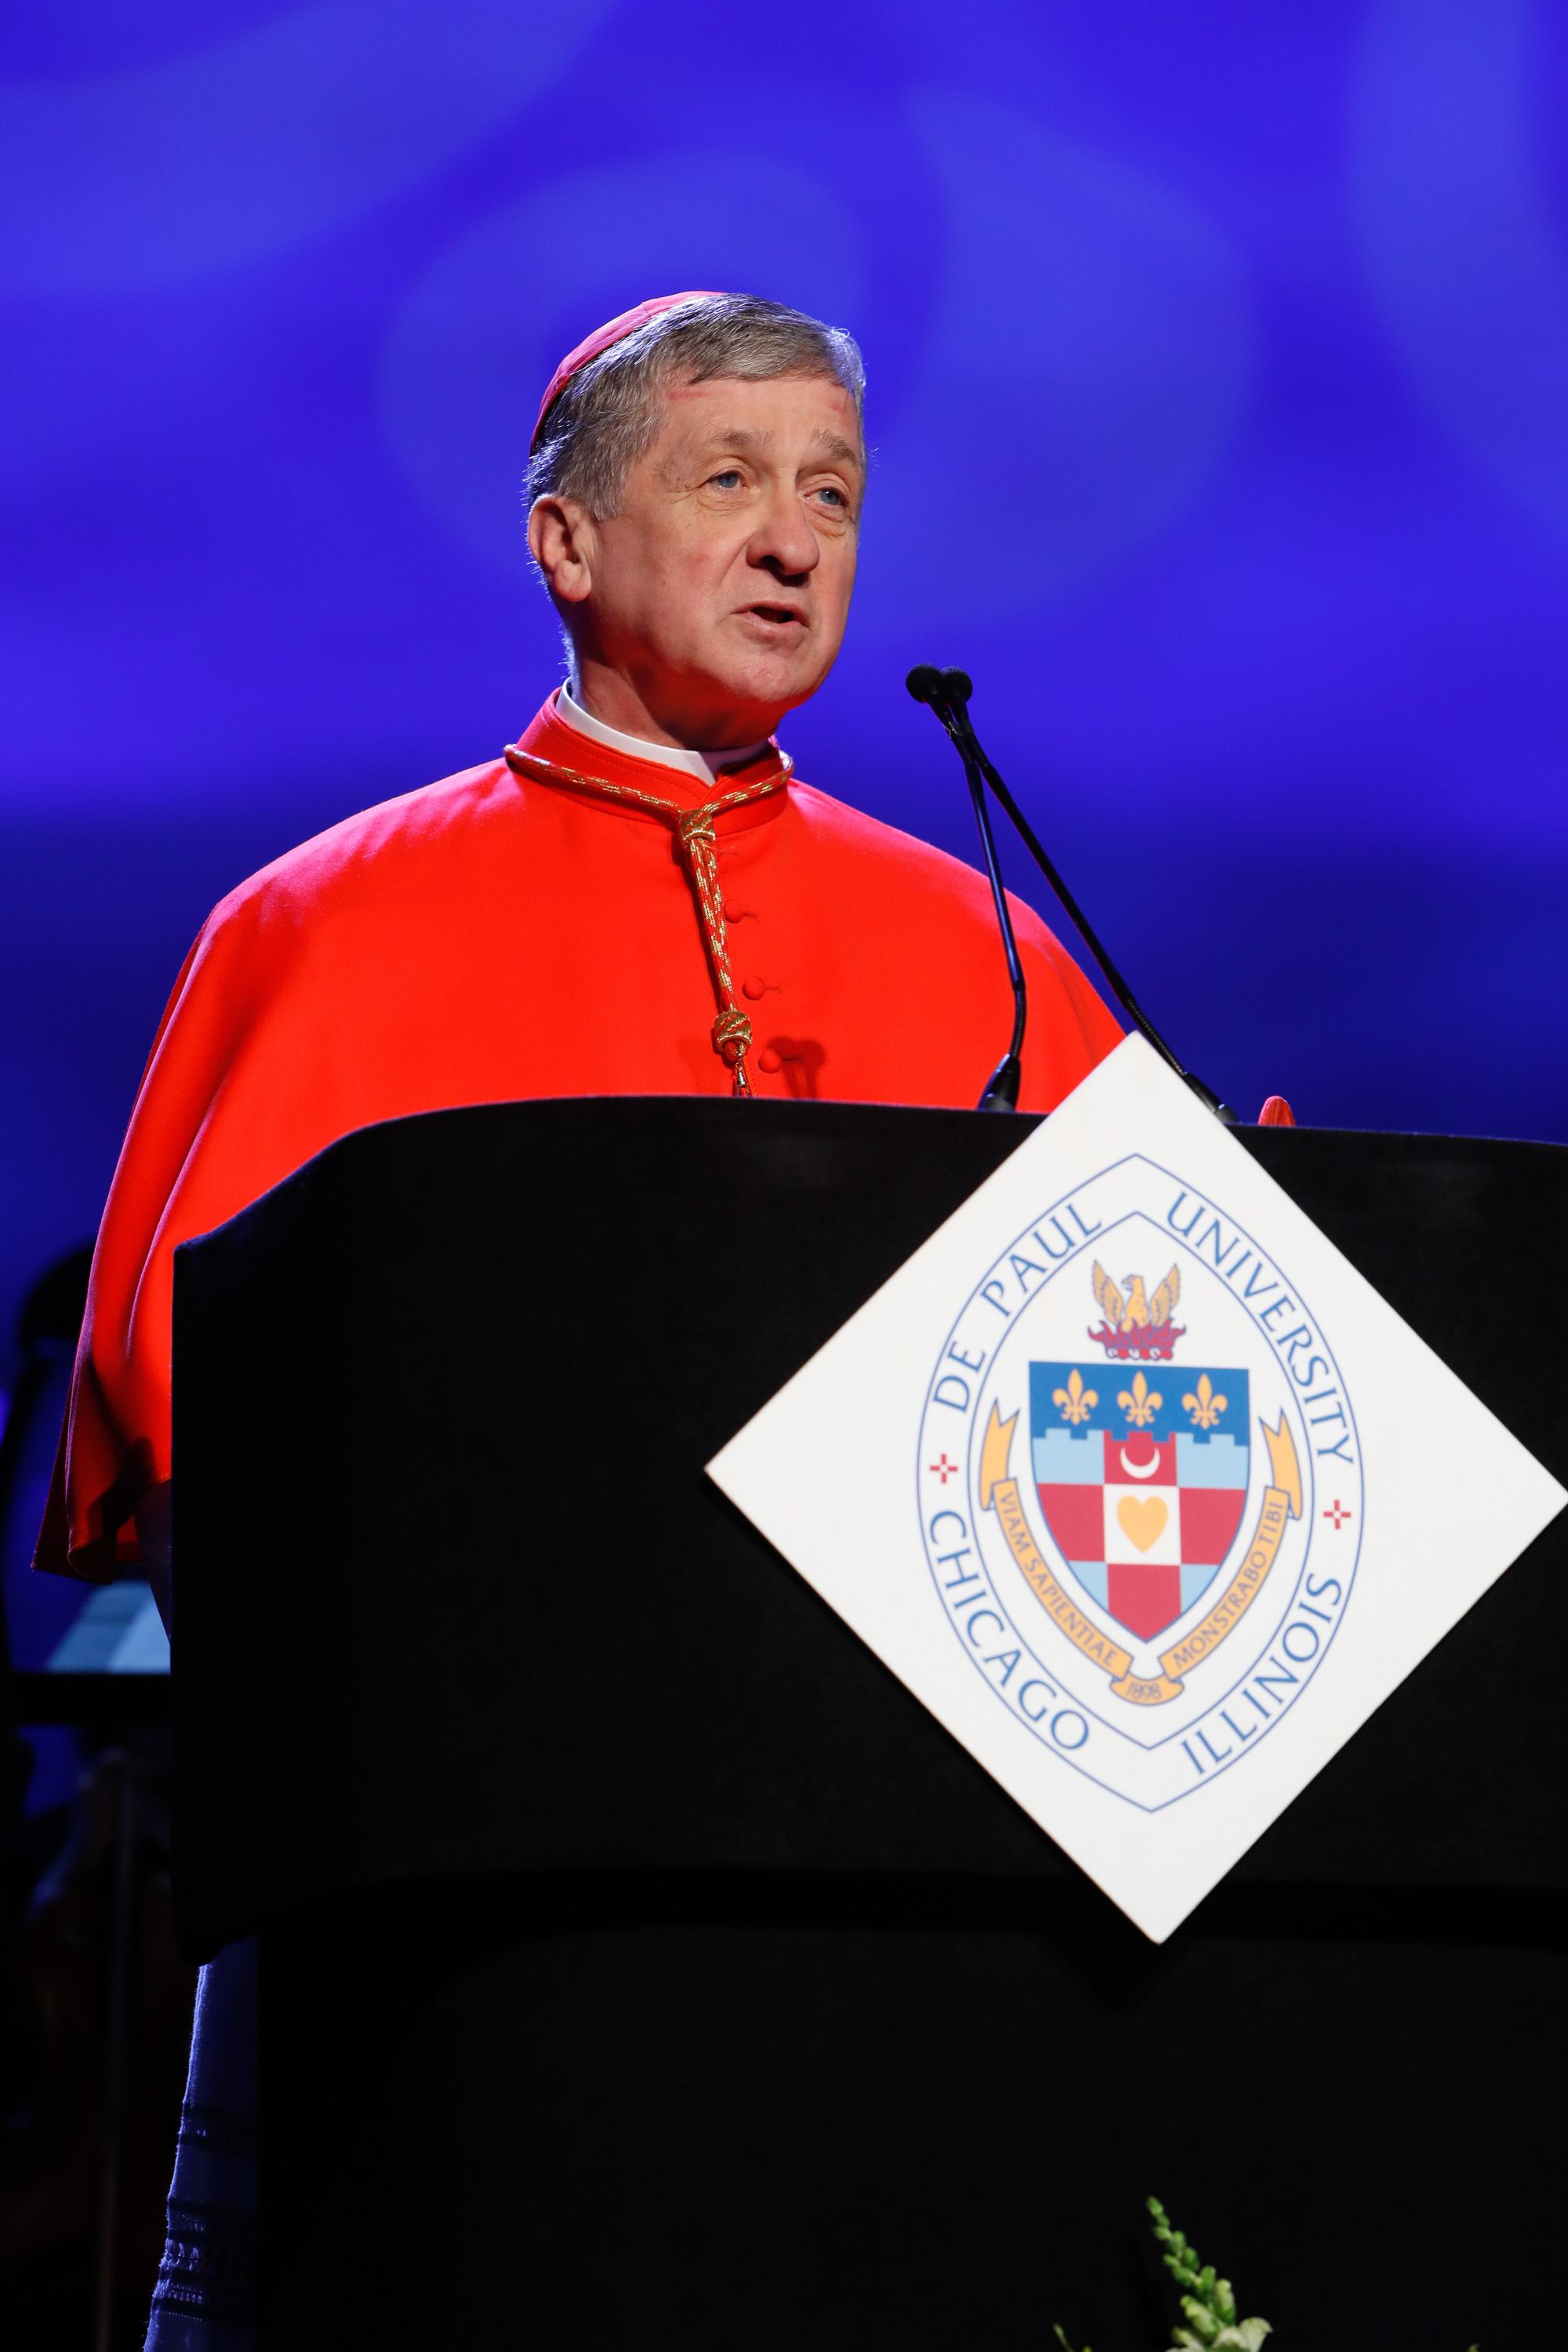 Cardinal Blase Cupich, archbishop of Chicago